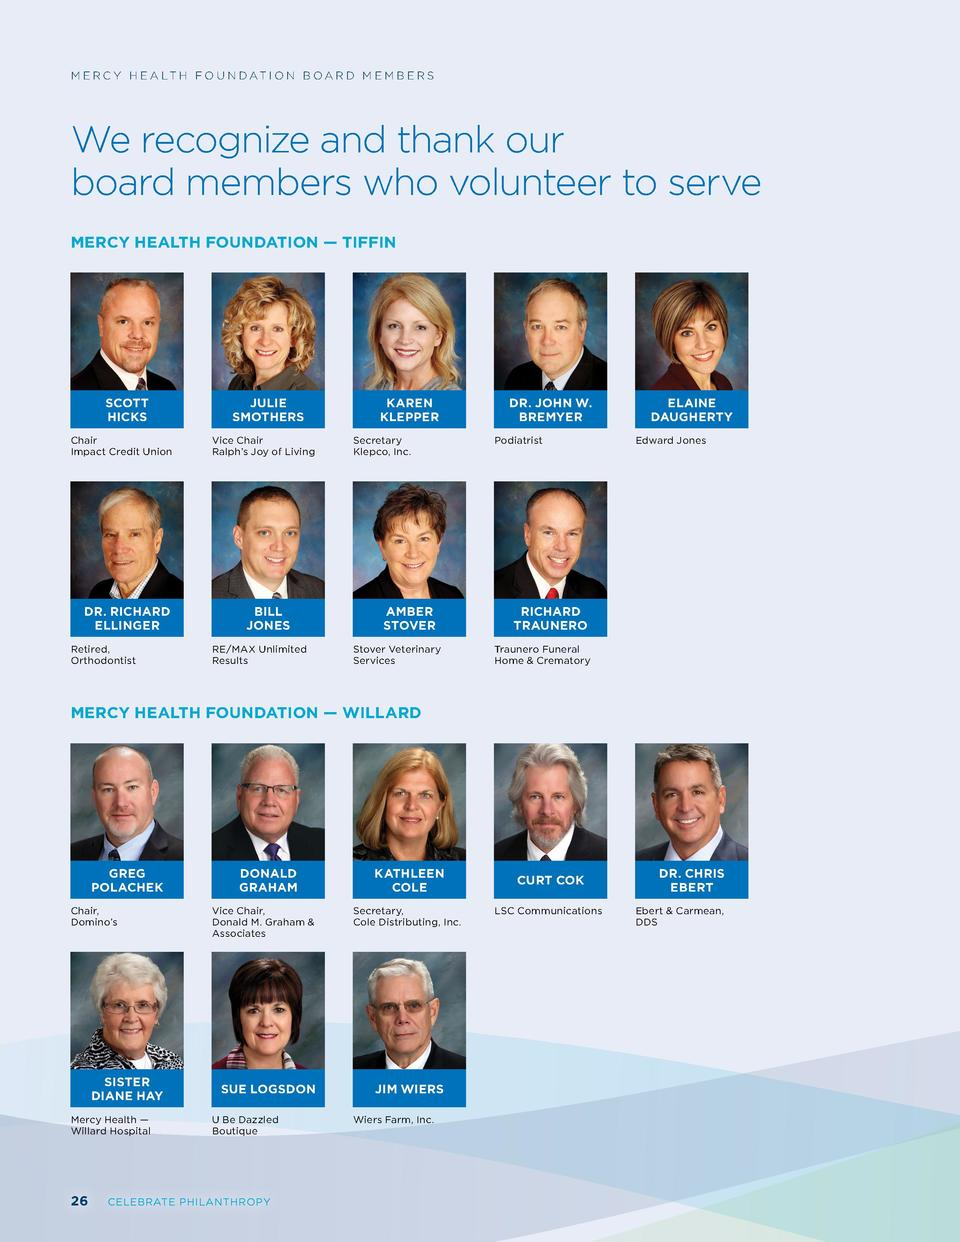 M E R C Y H E A LT H F O U N D AT I O N B O A R D M E M B E R S  We recognize and thank our board members who volunteer to...